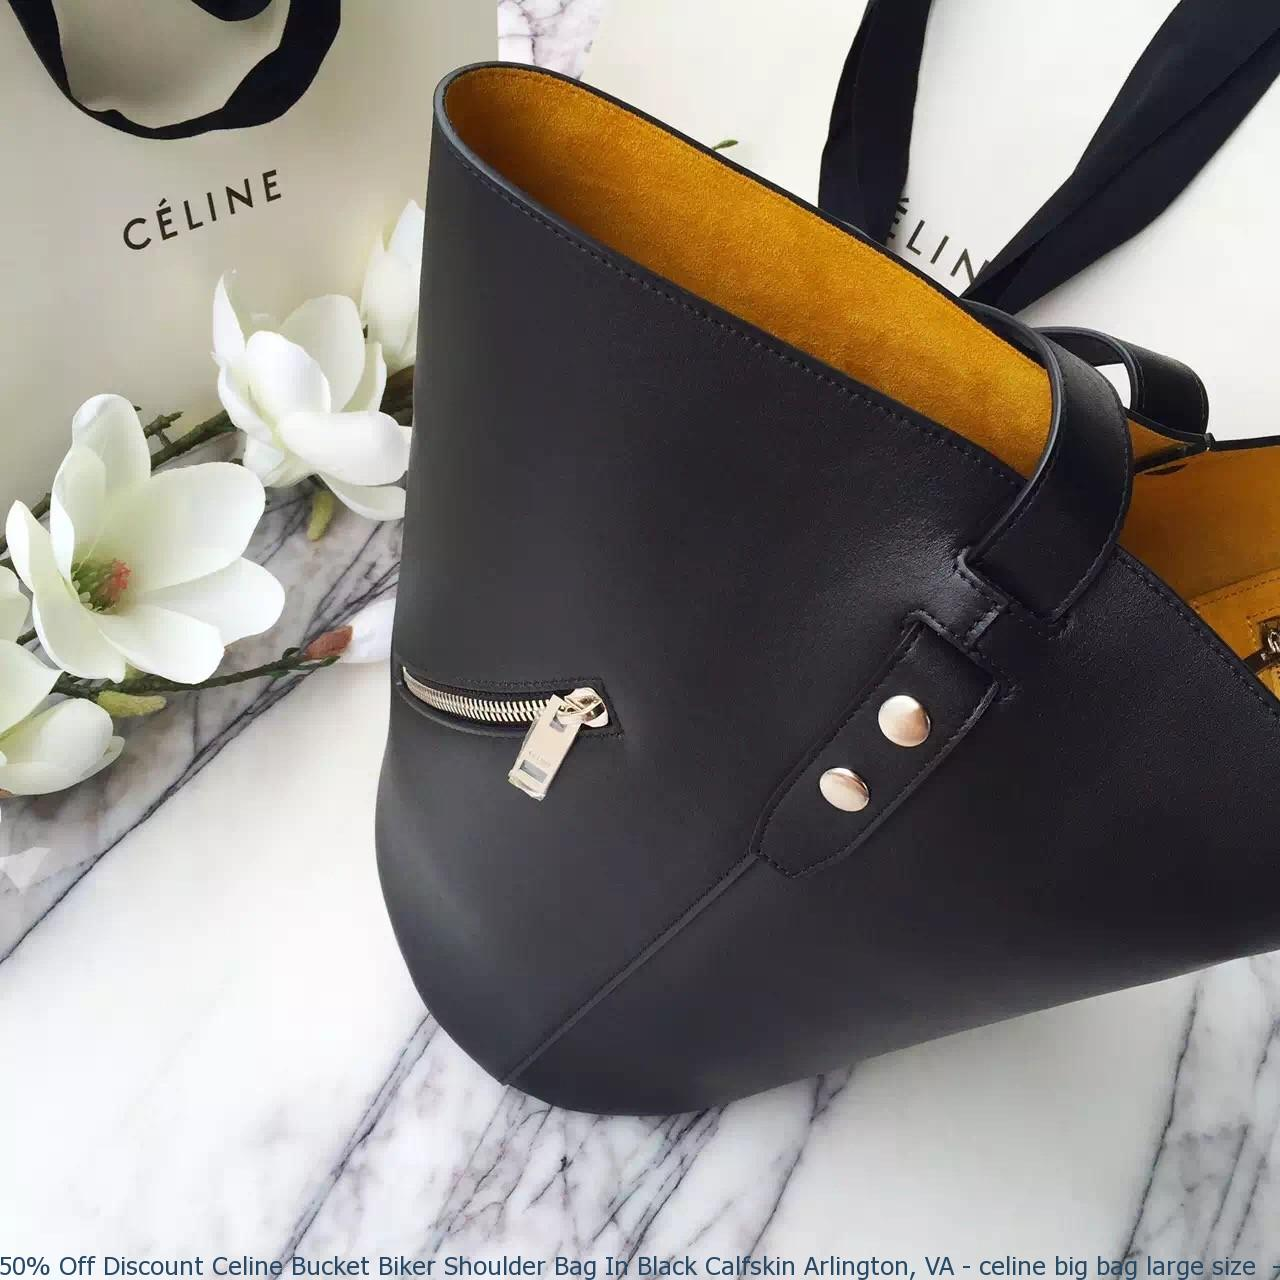 cf43628f0f 50% Off Discount Celine Bucket Biker Shoulder Bag In Black Calfskin ...